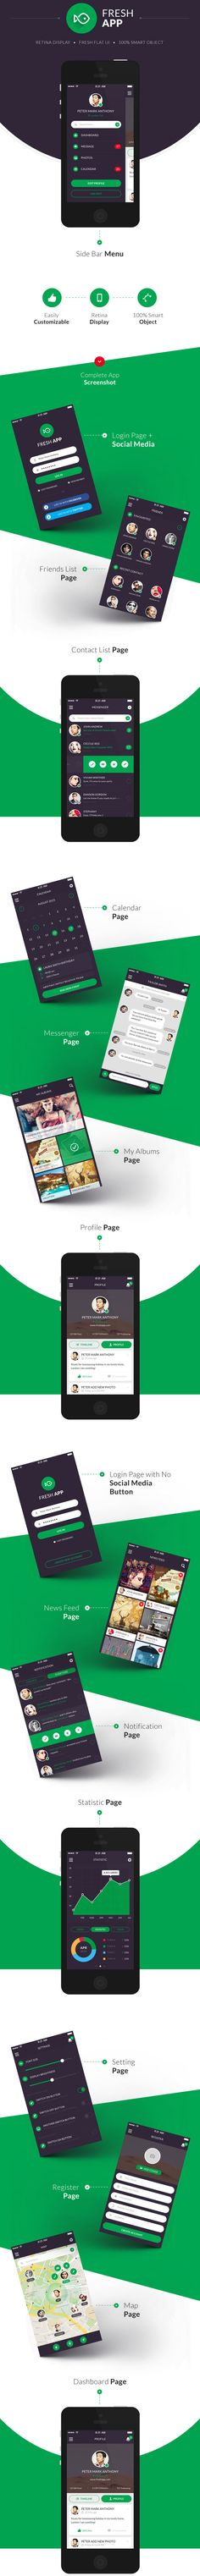 Buy Fresh Flat Mobile UI Kit by vuuuds on GraphicRiver. Point Mobile Phone App UI Kit – Flat mobile app design created using Adobe Photoshop CS. You can use this for iPhone . Web Design, App Ui Design, Flat Design, Mobile Ux, Mobile Ui Design, Iphone Mobile, Gui Interface, User Interface Design, Ui Kit